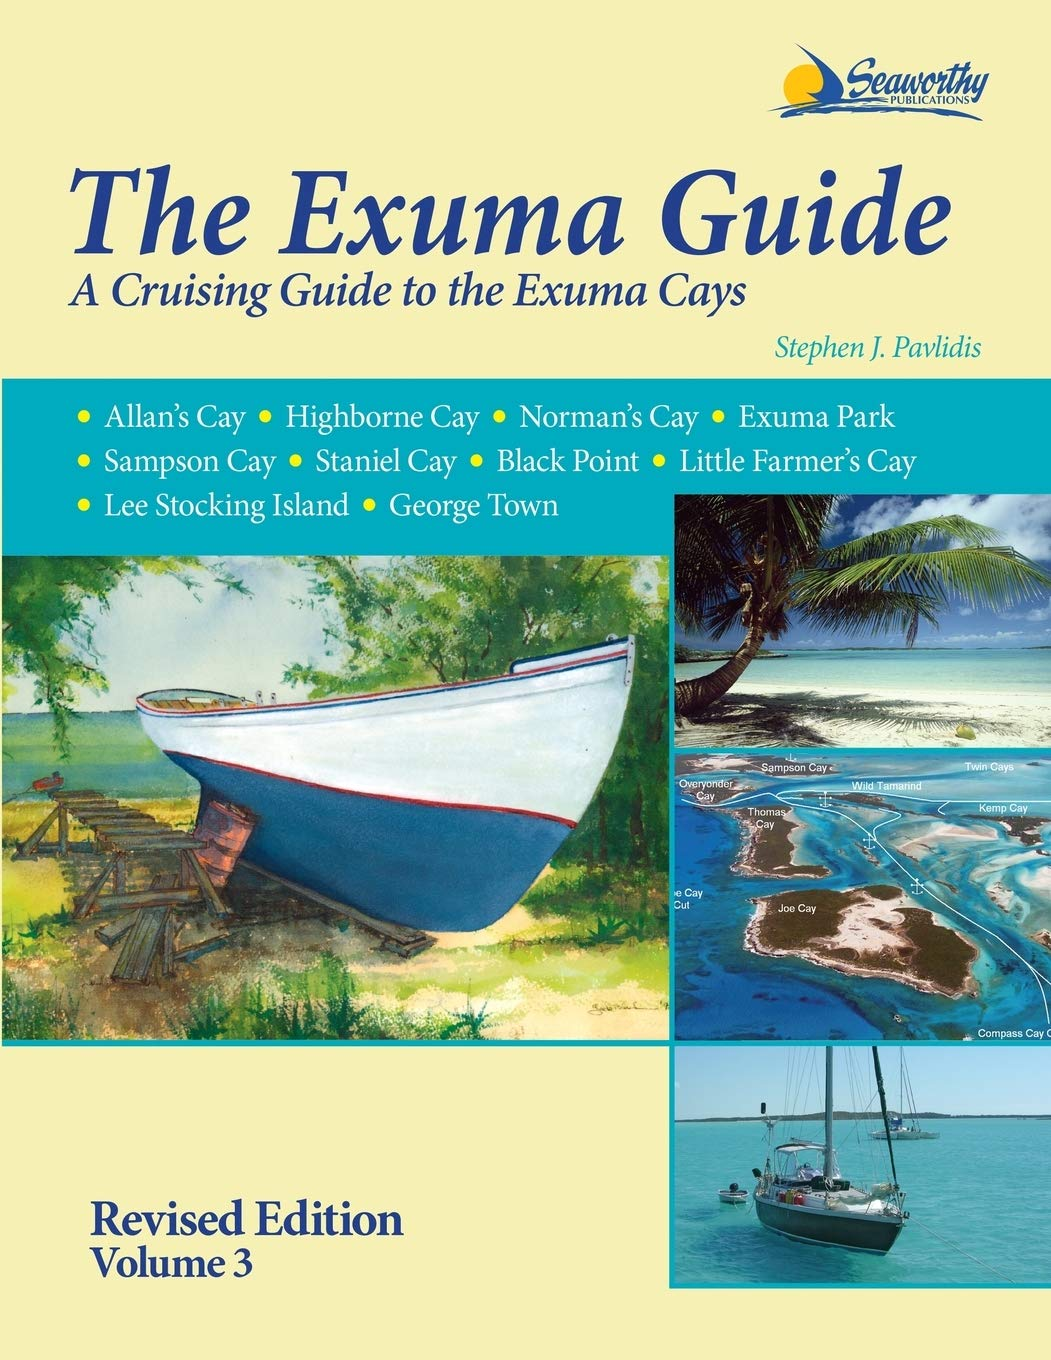 The Exuma Guide 3rd ed. by Seaworthy Publications, Inc.